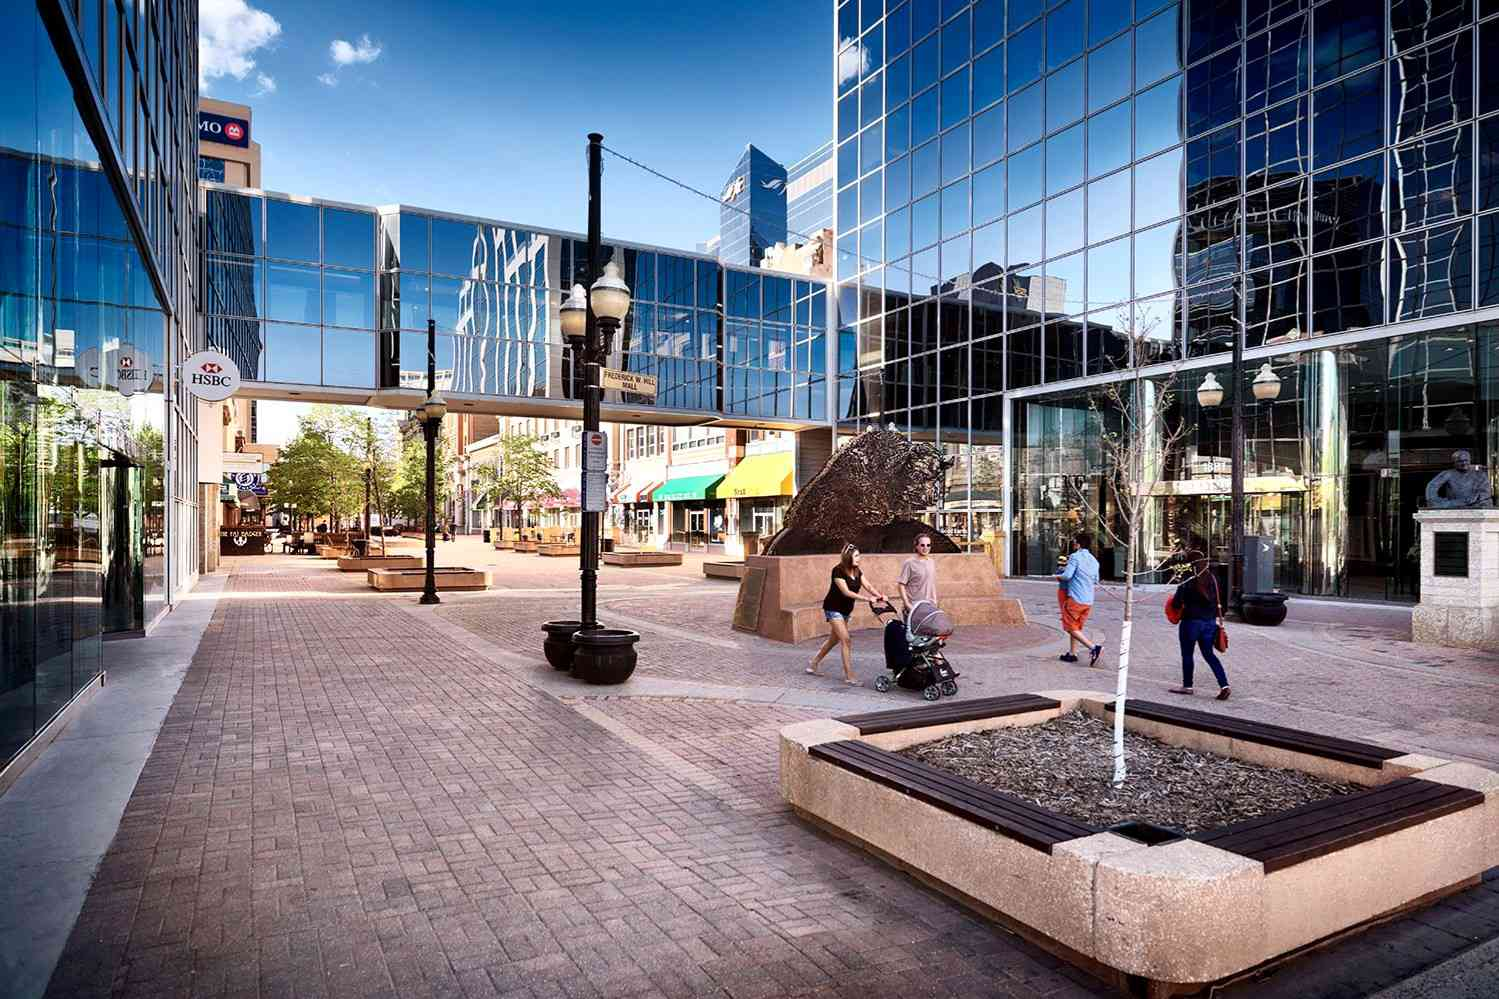 Downtown city scenery of Scarth Street Mall in Regina